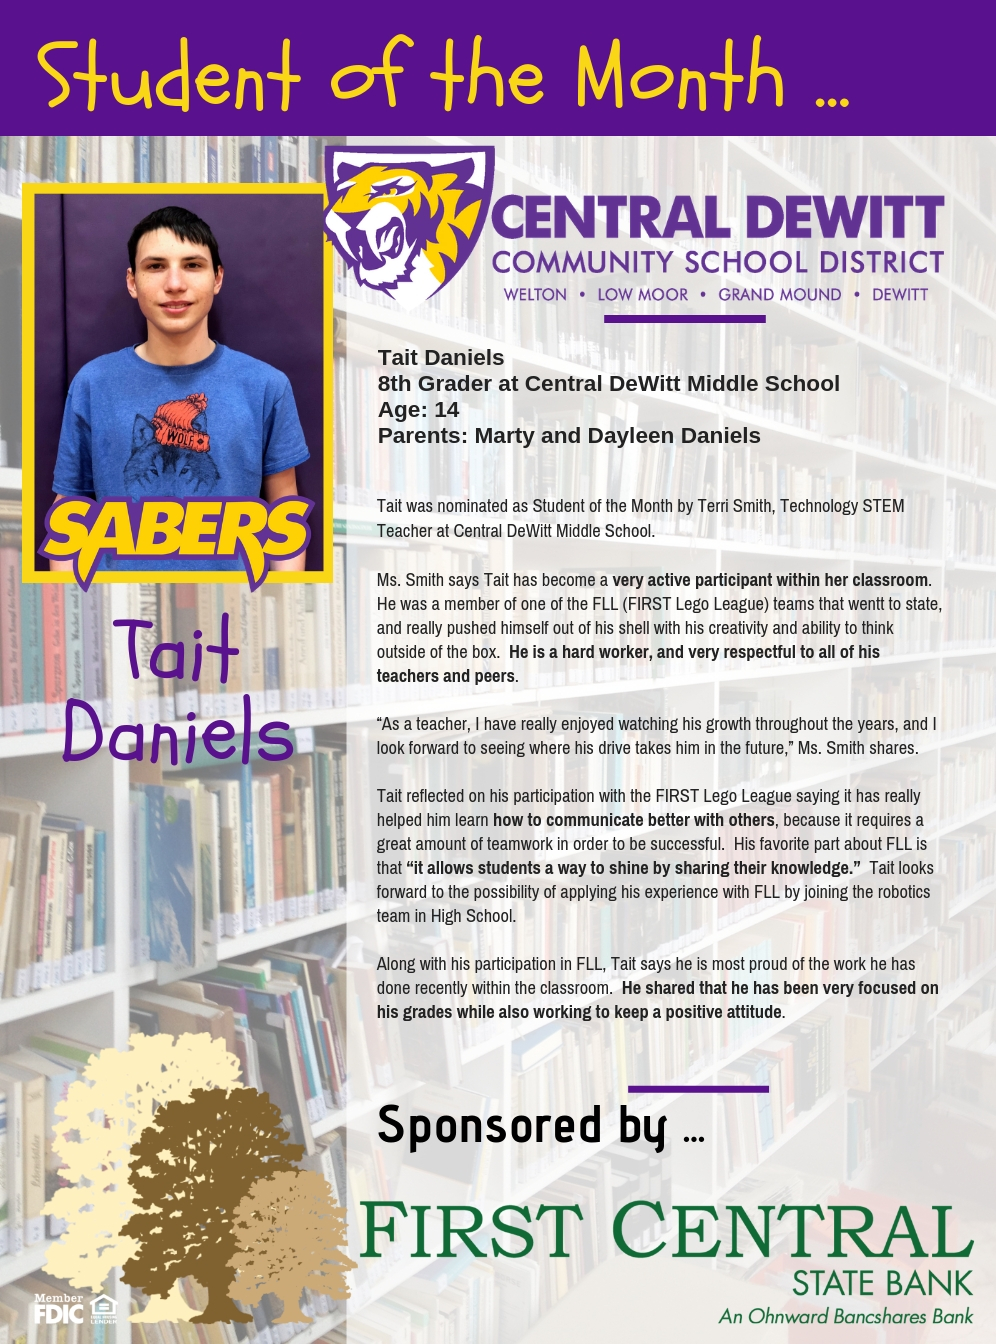 Student of the Month, Tait Daniels